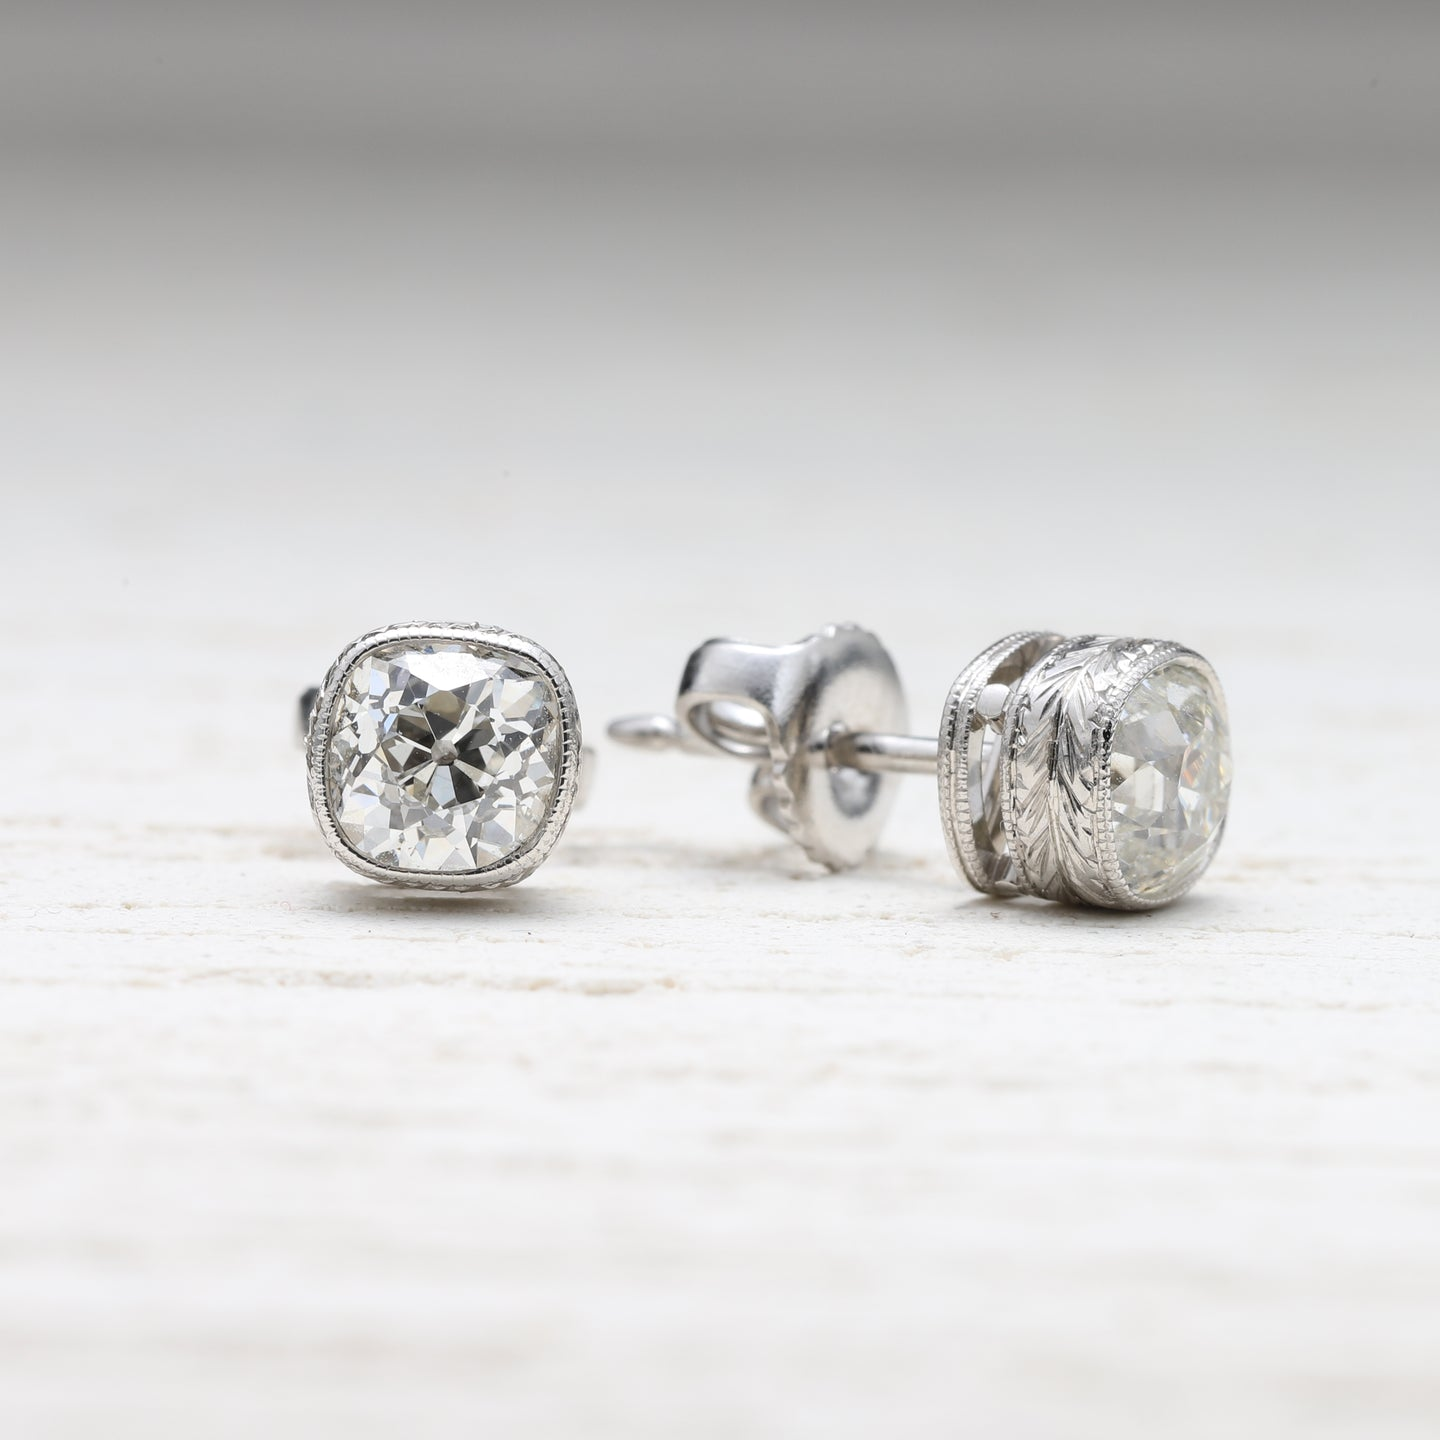 33358 Engraved Bezel Old Mine Cut Diamond Stud Earrings